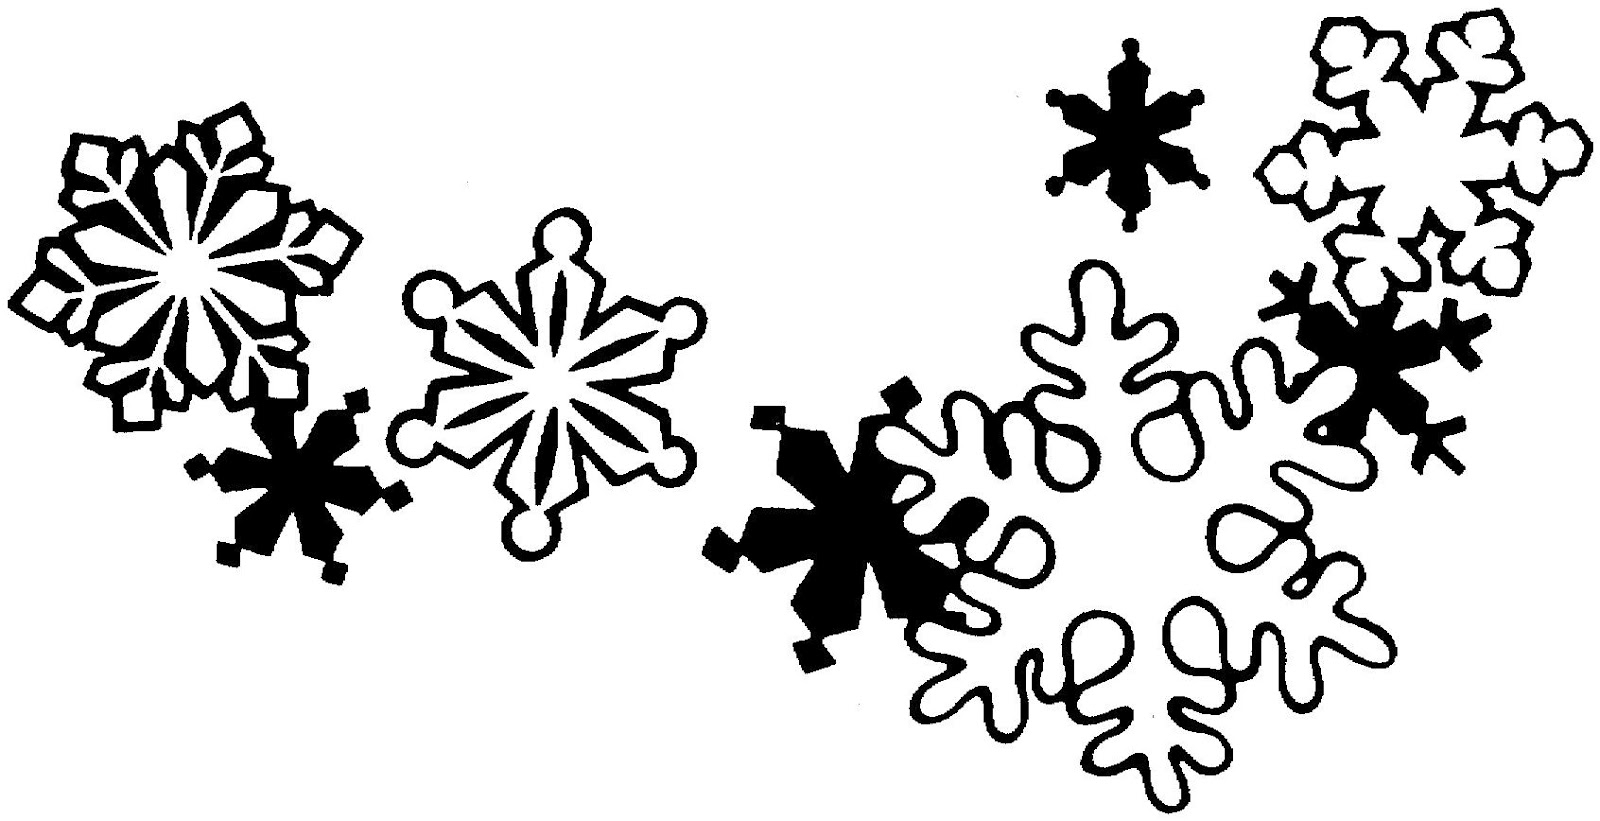 christmas gift border clipart black and white 20 free Cliparts | Download images on Clipground 2020